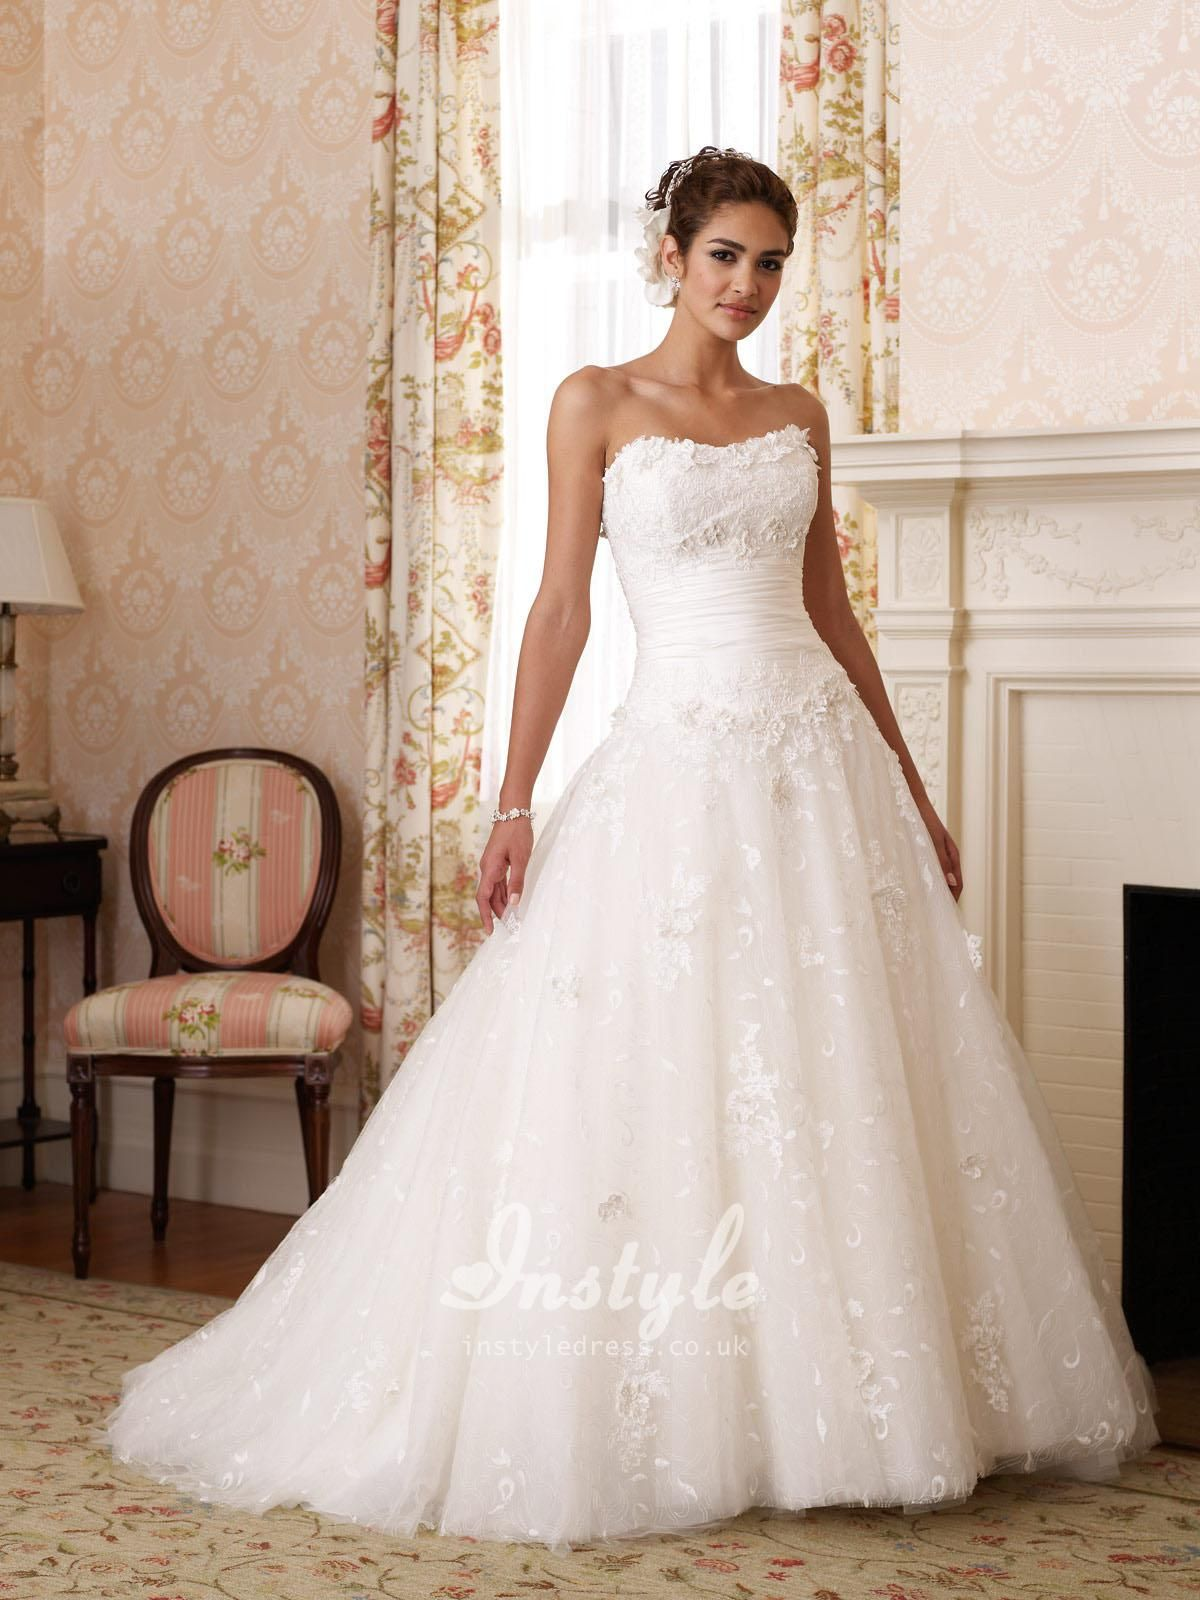 Lace Over Taffeta Strapless Ball Gown Wedding Dress UK | wedding ...